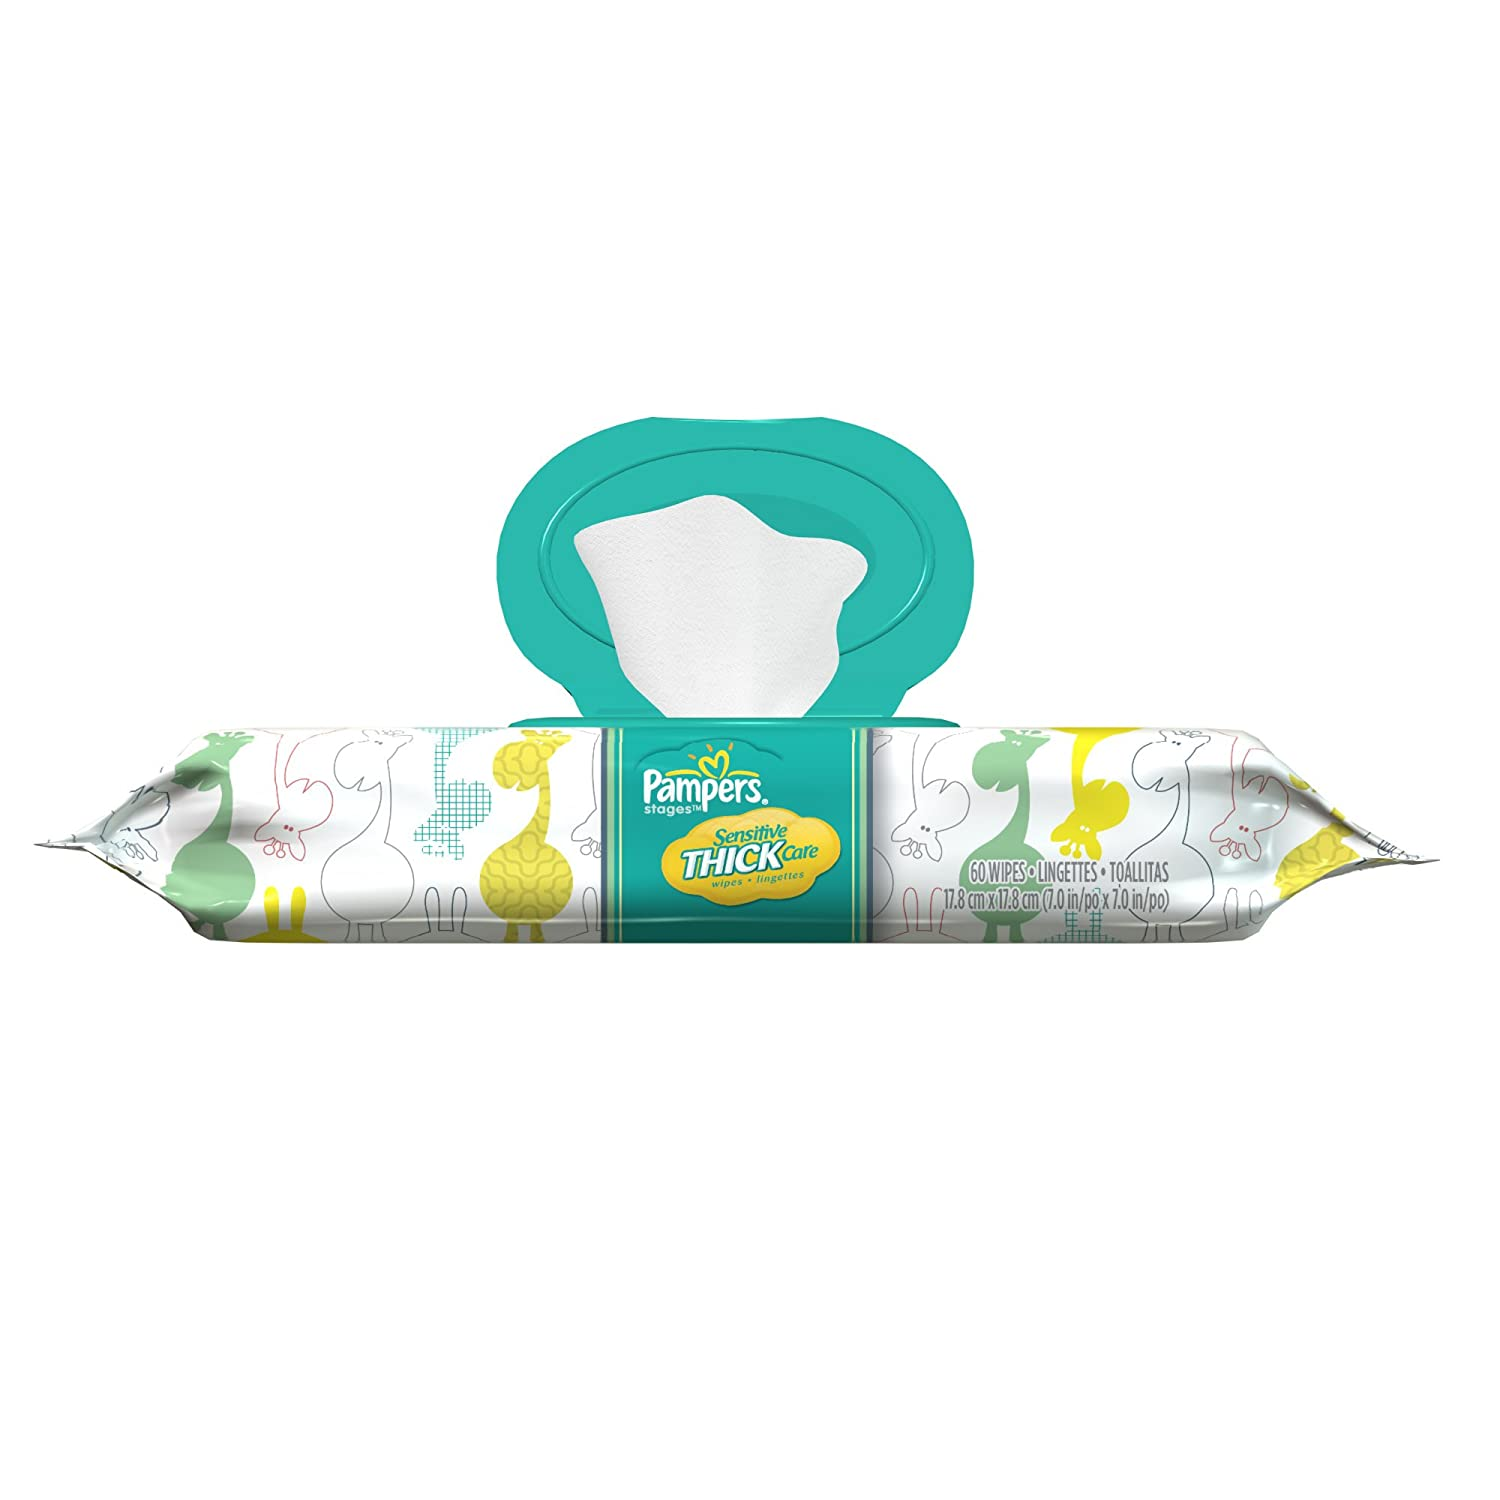 Amazon.com: Pampers Sensitive ThickCare Wipes 1x Fitment Pack 60 Count (Pack of 8): Health & Personal Care